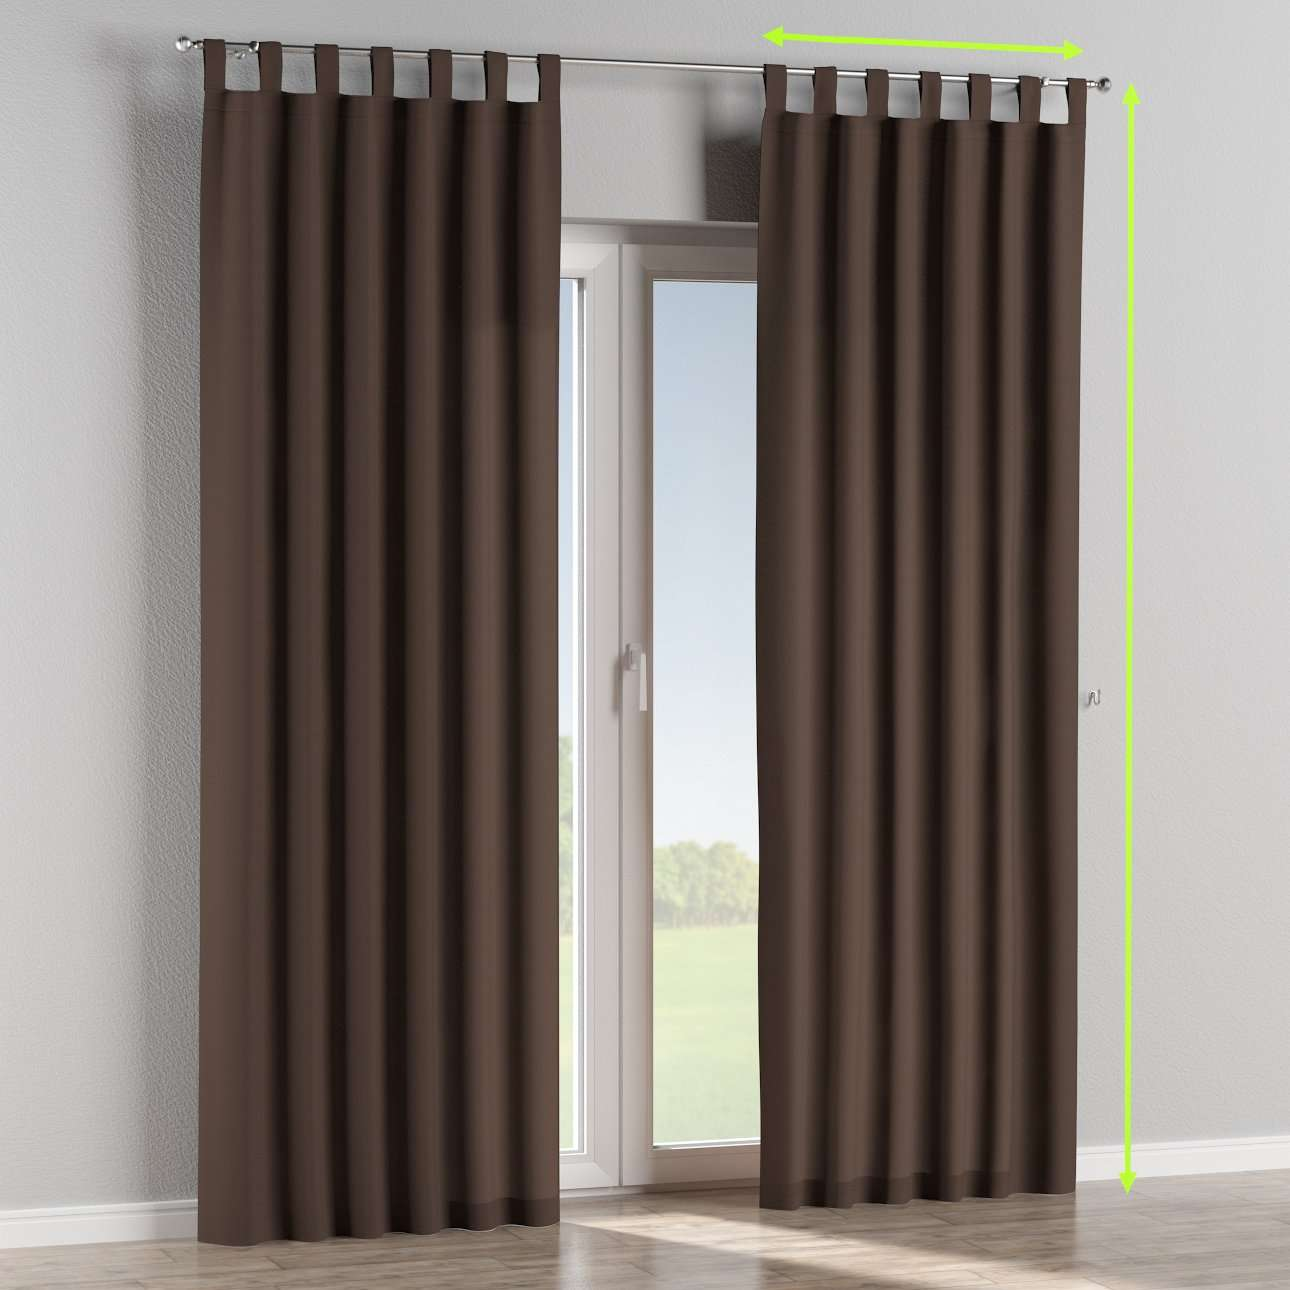 Tab top lined curtains in collection Cotton Panama, fabric: 702-03